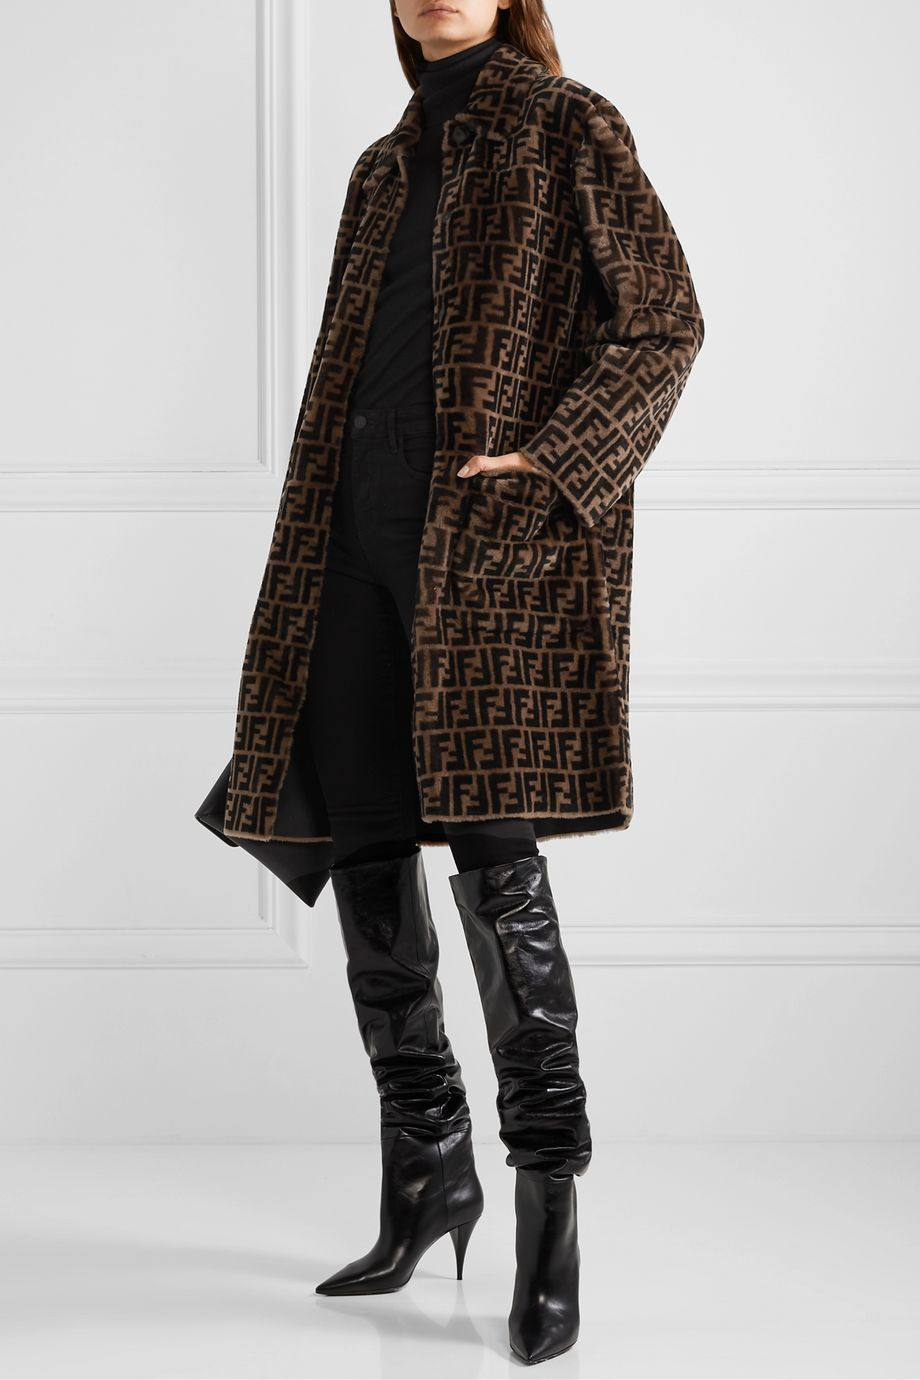 Fendi Reversible printed shearling coat